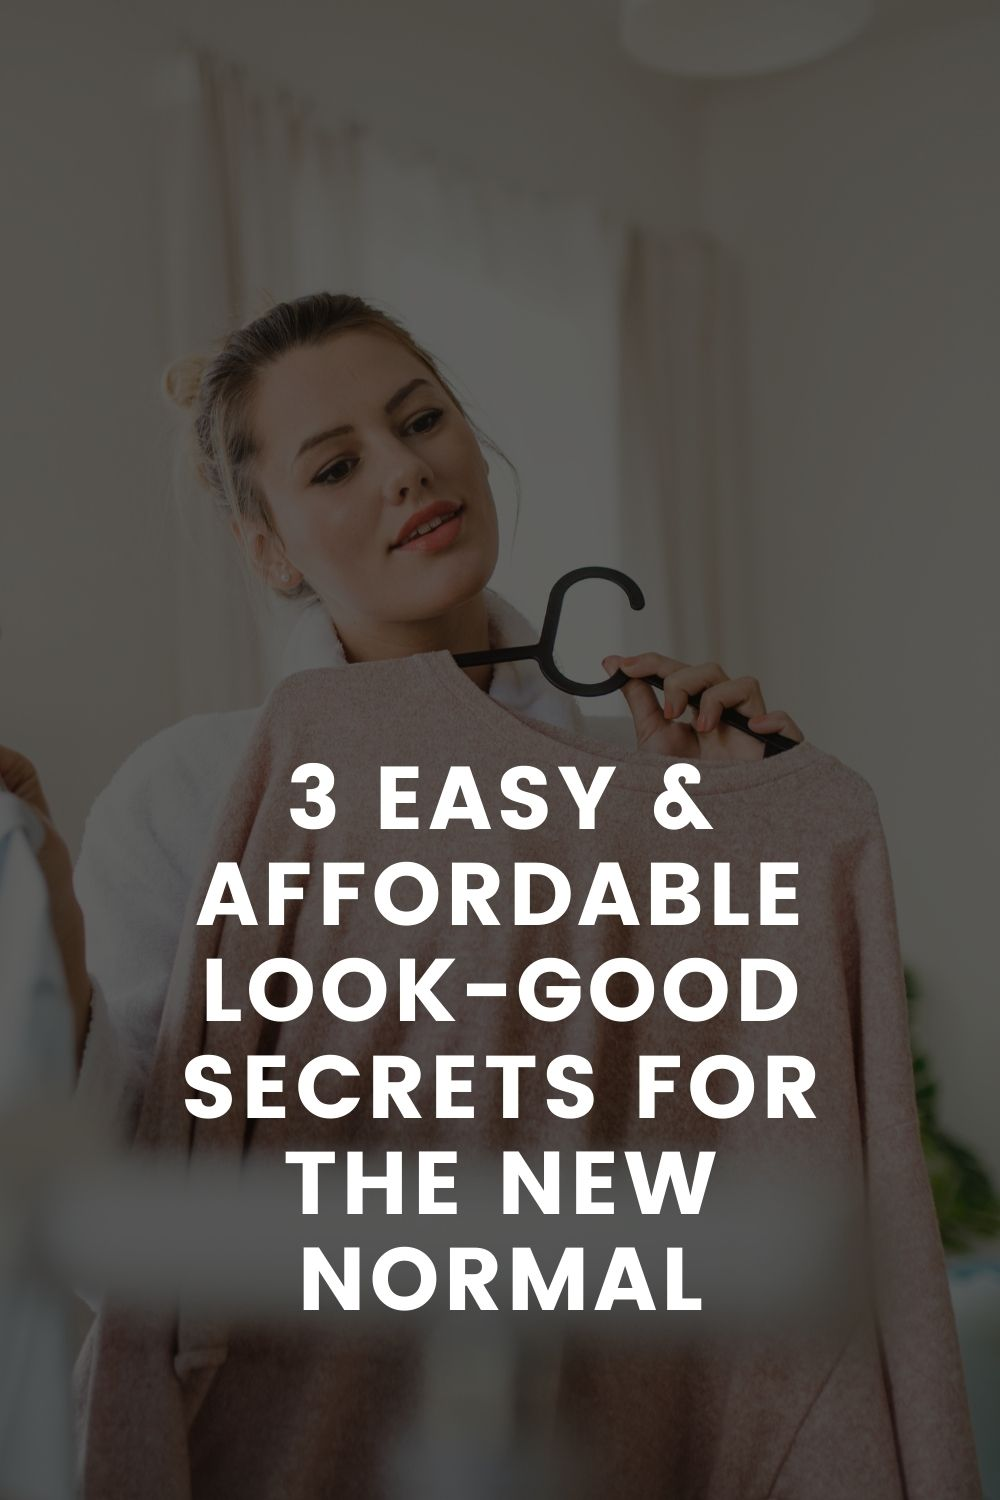 3 Easy & Affordable Look-Good Secrets For The New Normal